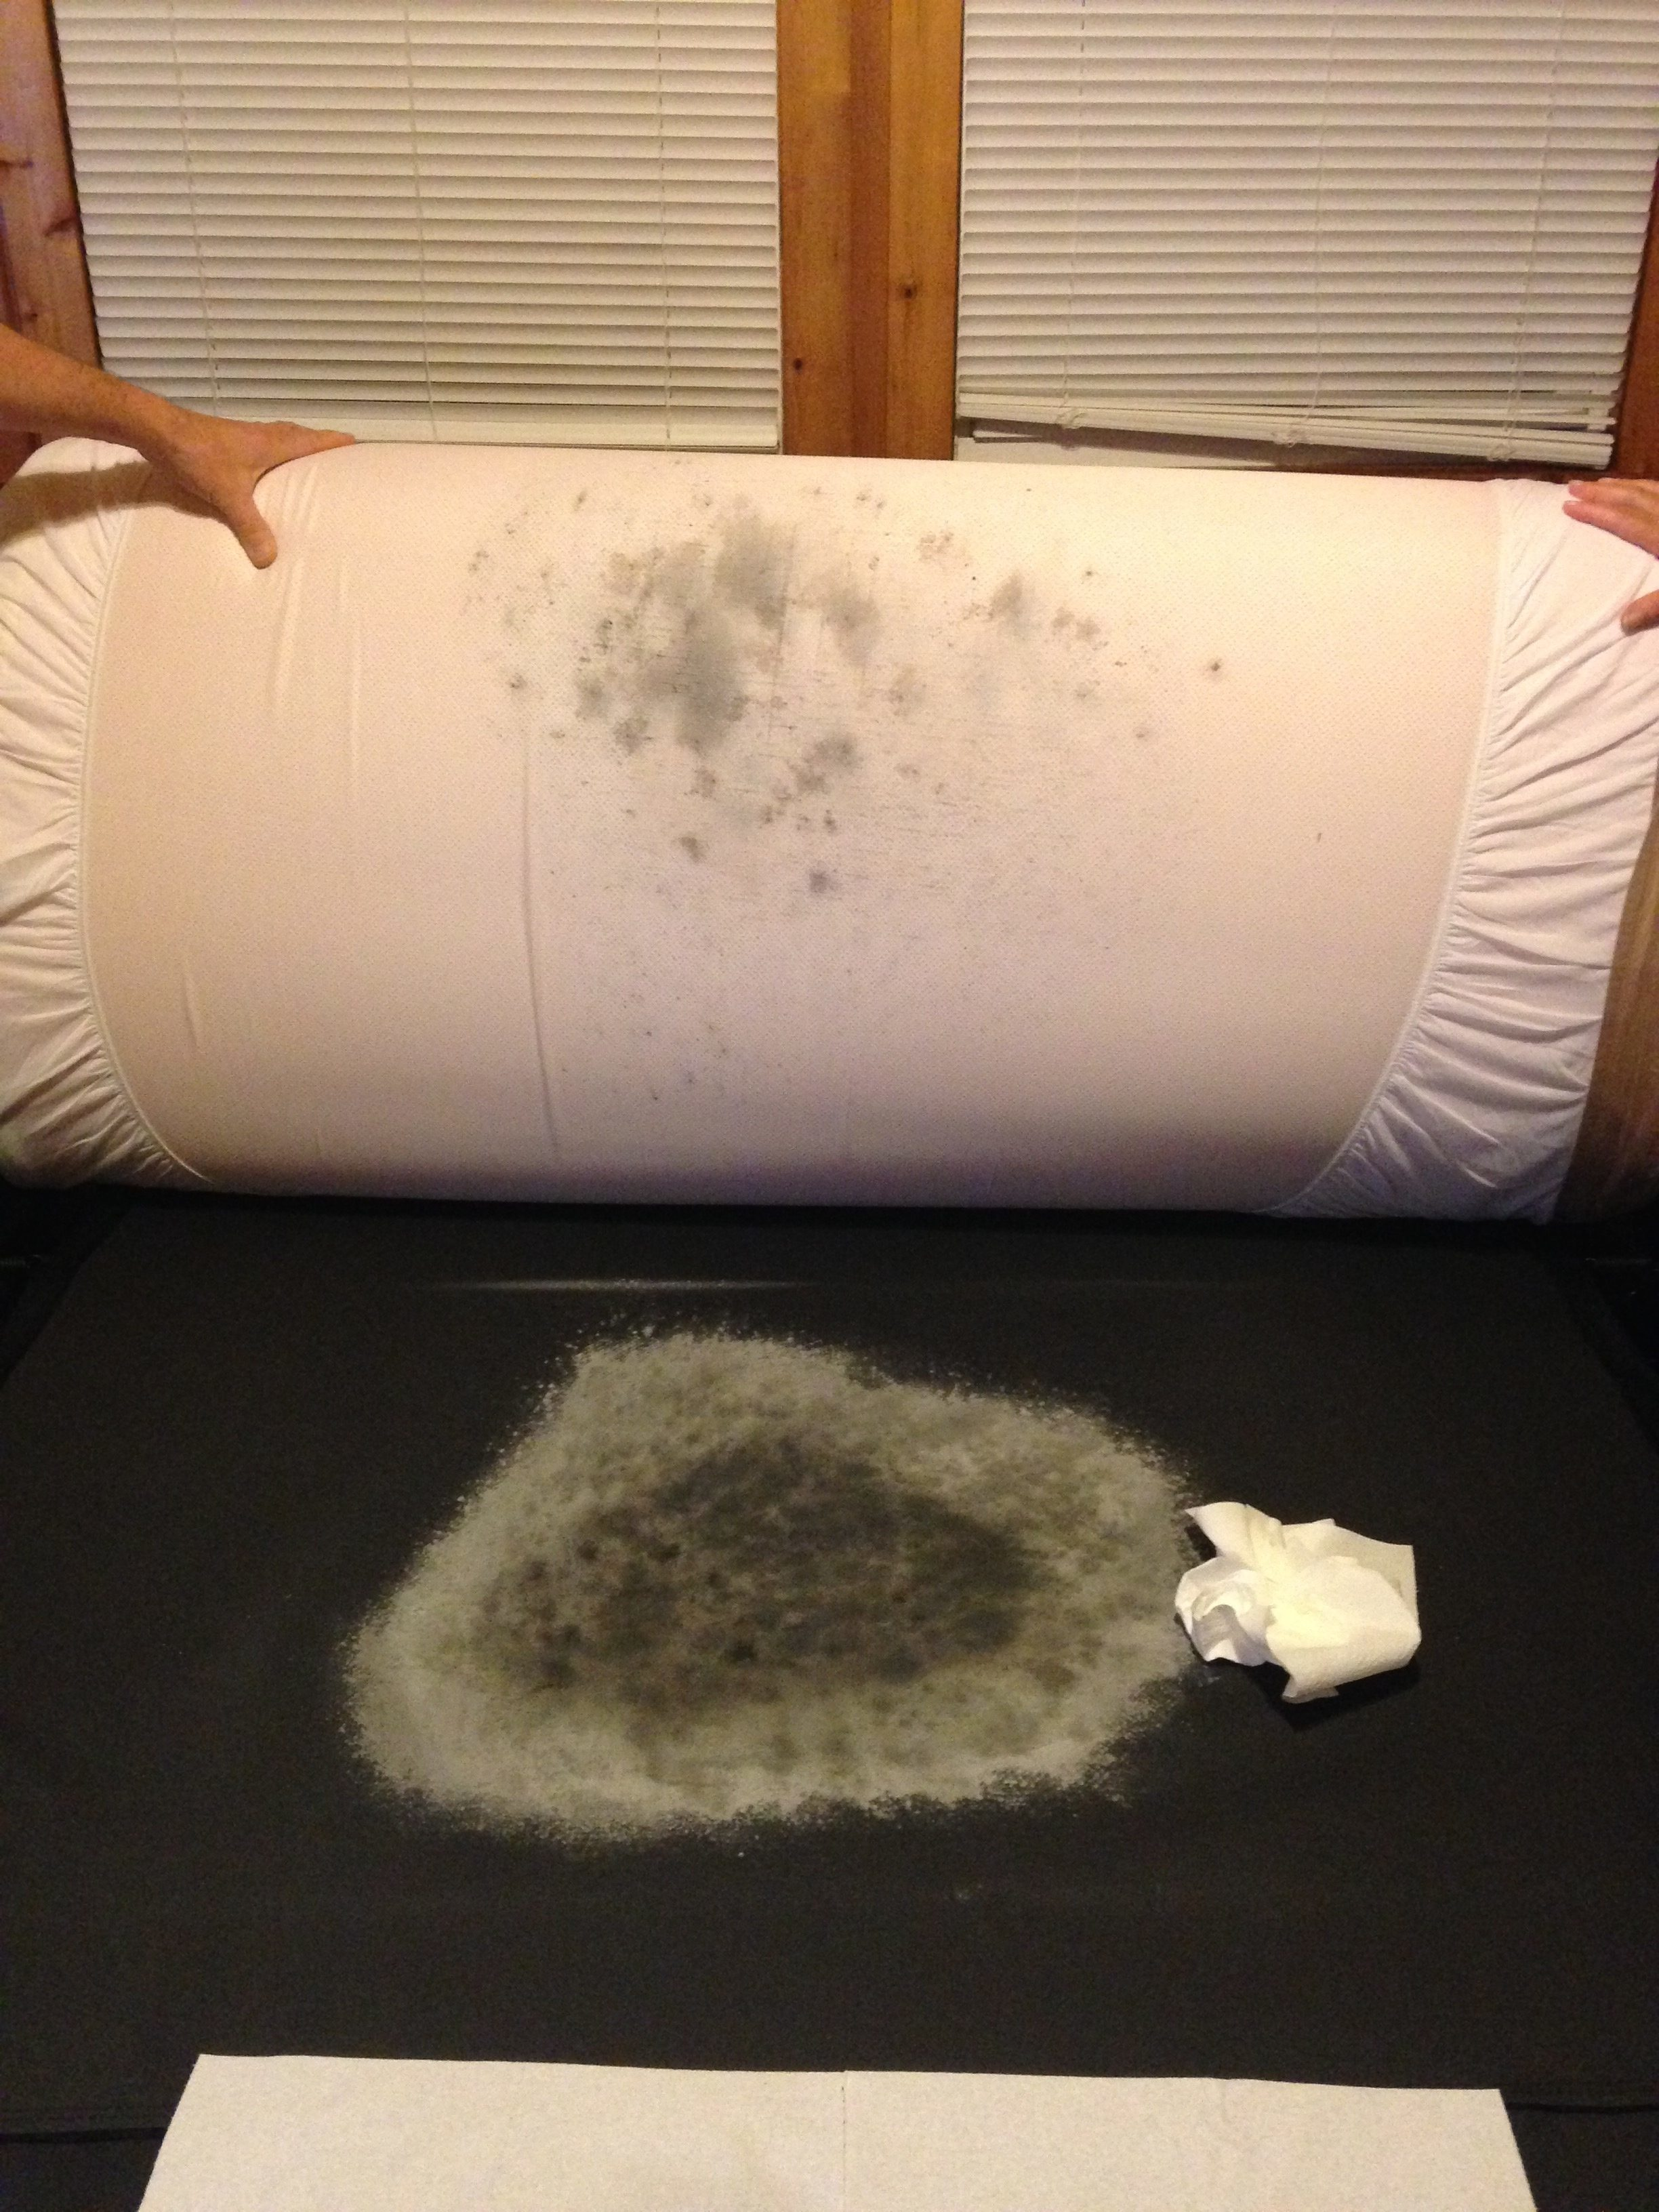 ... Of The Line Memory Foam. Top 1 007 Complaints And Reviews About Bob S  Furniture